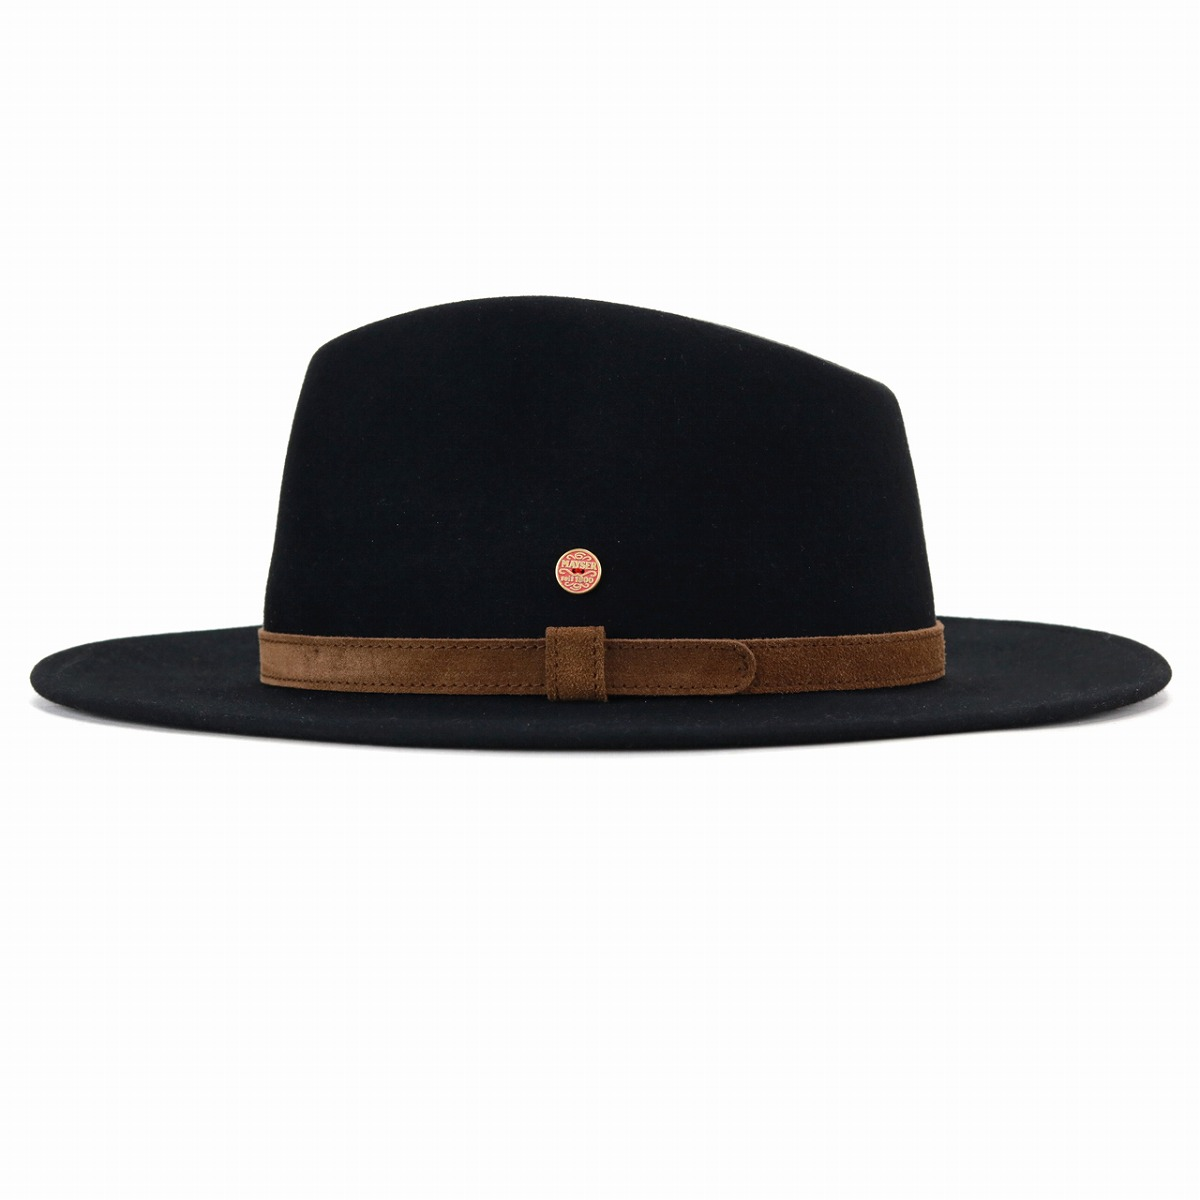 96451479 Y ditch rim suede genuine leather hat soft felt hat hat men Mai Zara bit  fur felt hat Lady's felt hat men MAYSER trilby hat Shin pull gentleman / ...